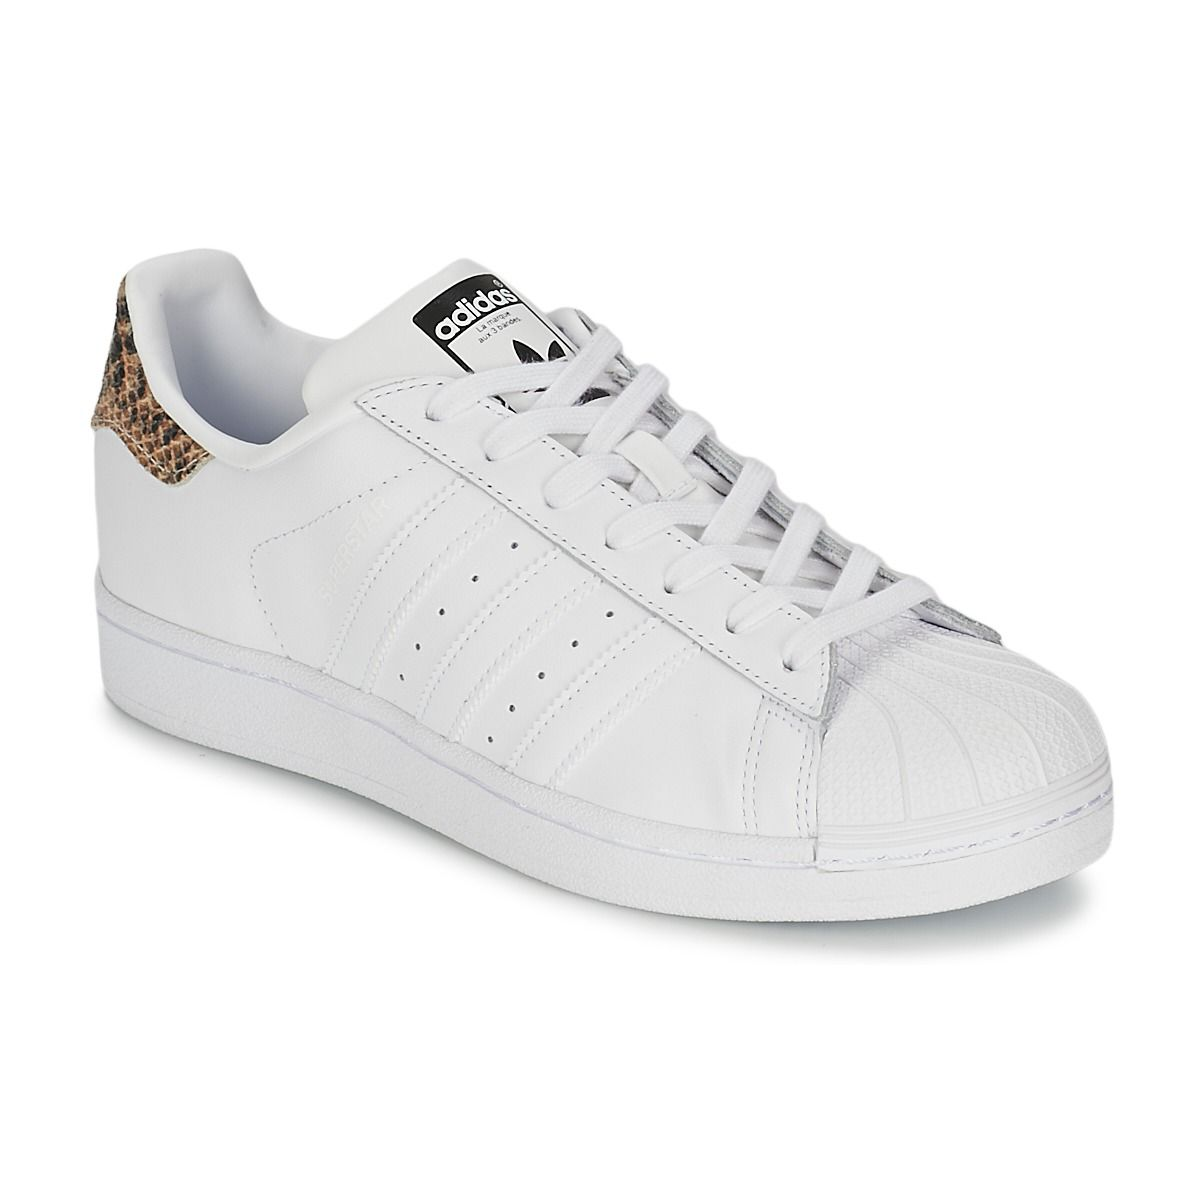 Baskets basses Adidas Originals SUPERSTAR W Blanc prix promo Baskets Femme  Spartoo 89.99 \u20ac